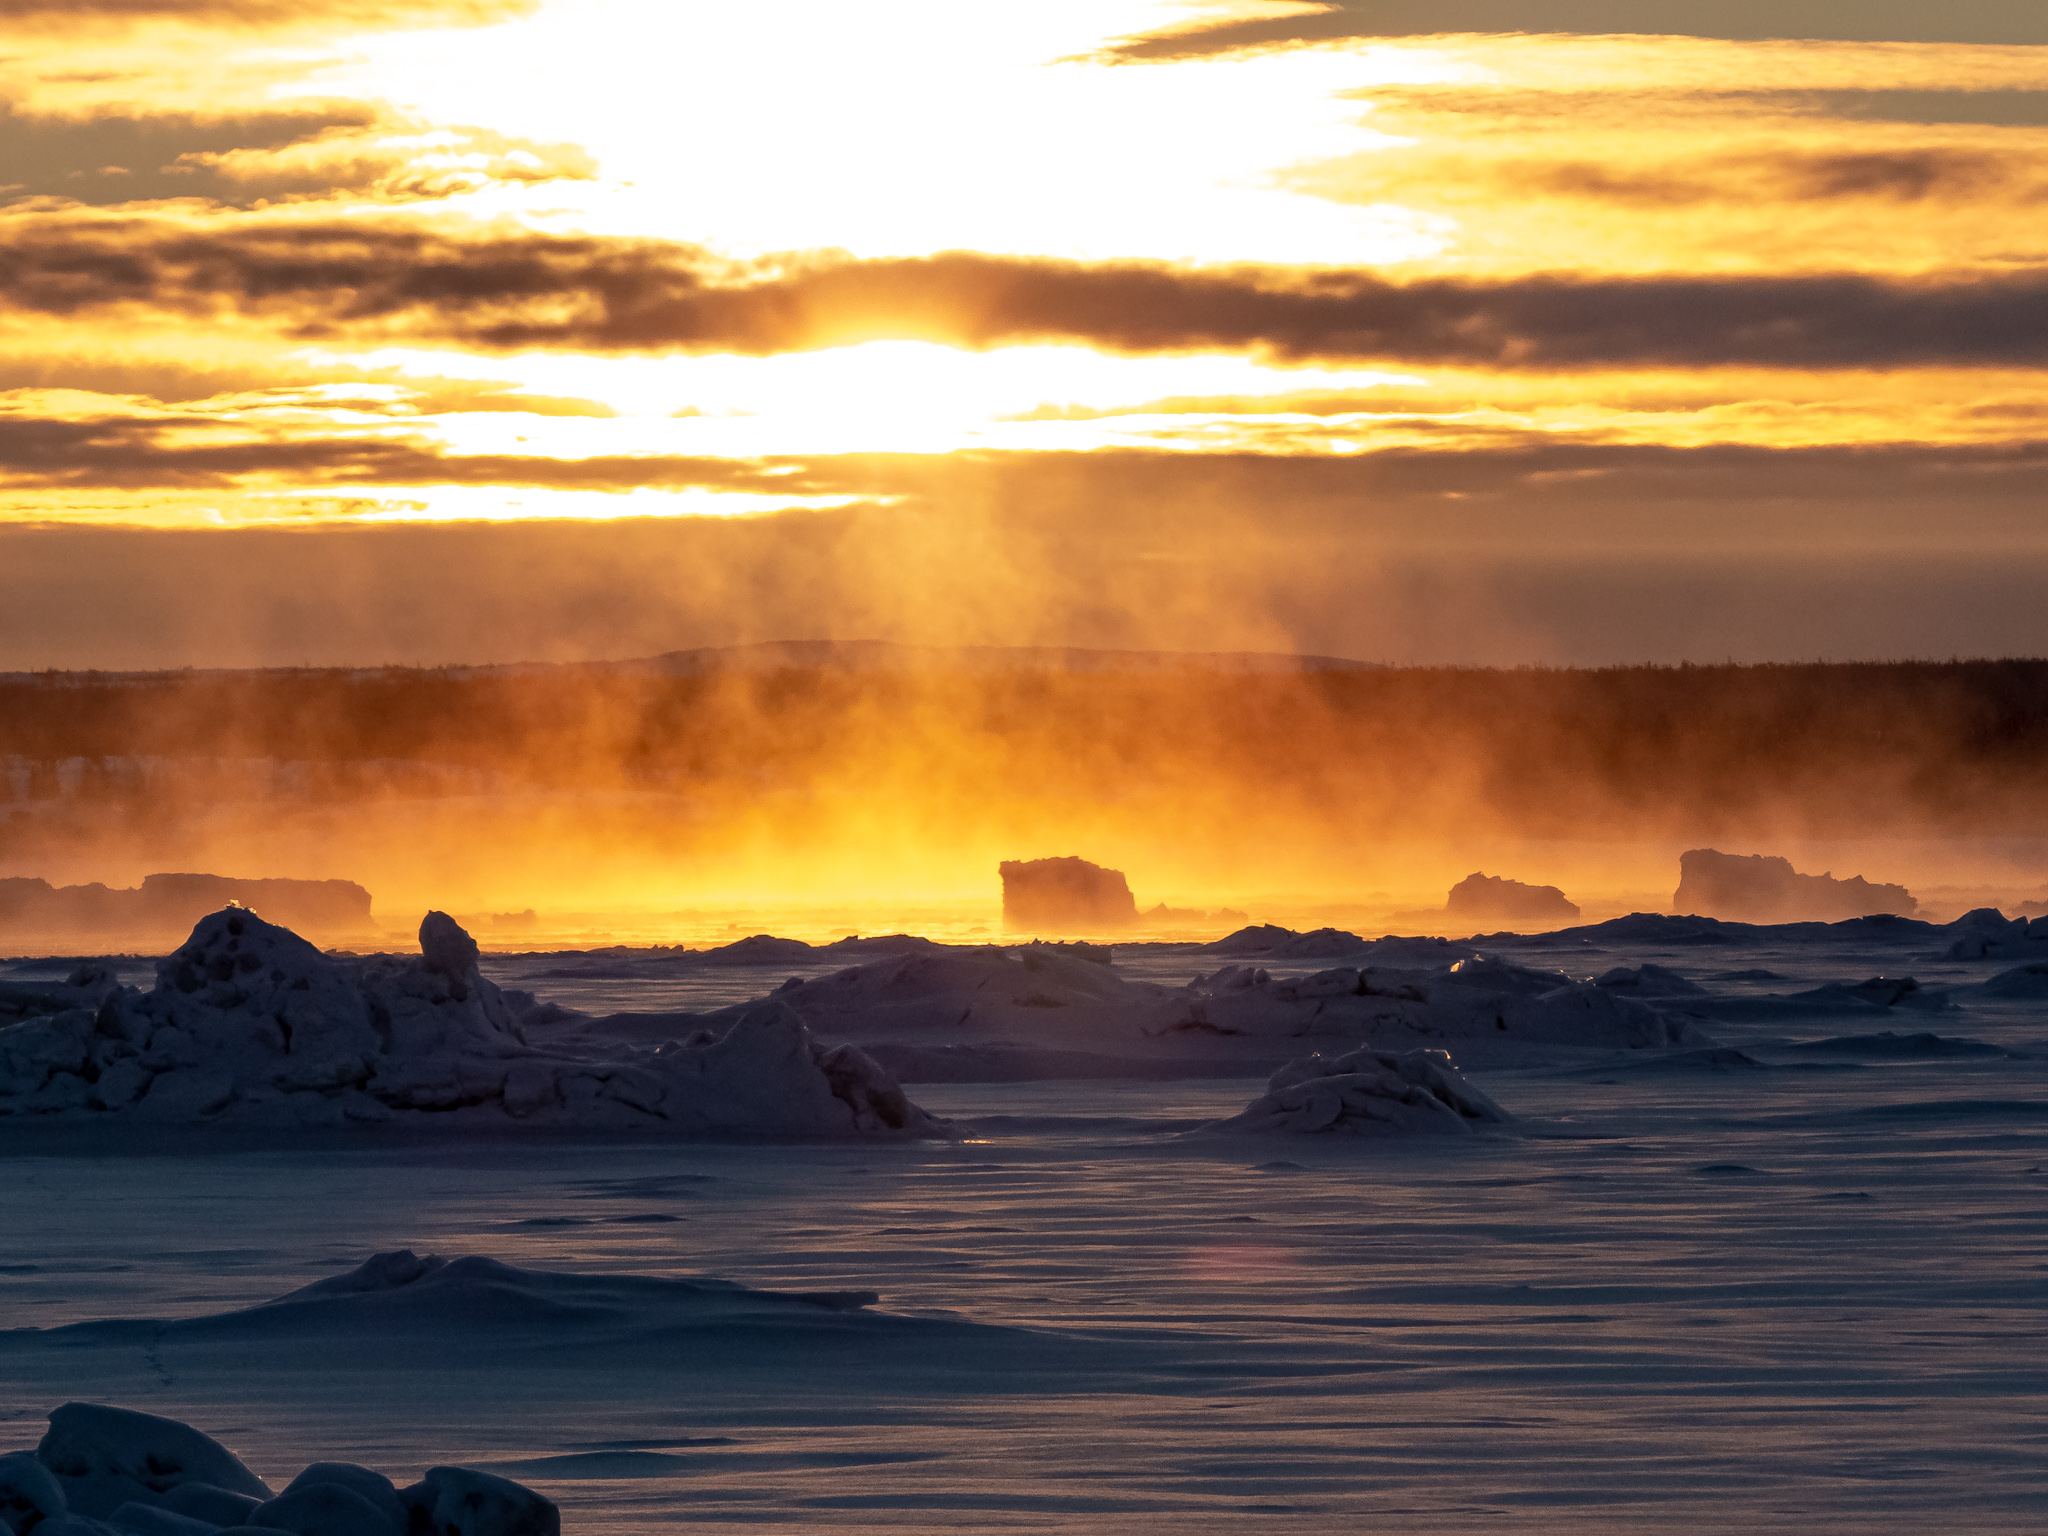 """Water vapour rises off the Koksoak River in Kuujjuaq at sunrise around 8 a.m. on Jan. 22. """"The water, which has not yet frozen, and the smoke are reflected like a river of lava surrounding the icebergs,"""" writes photographer Maxence Chavanne. (Photo by Maxence Chavanne)"""